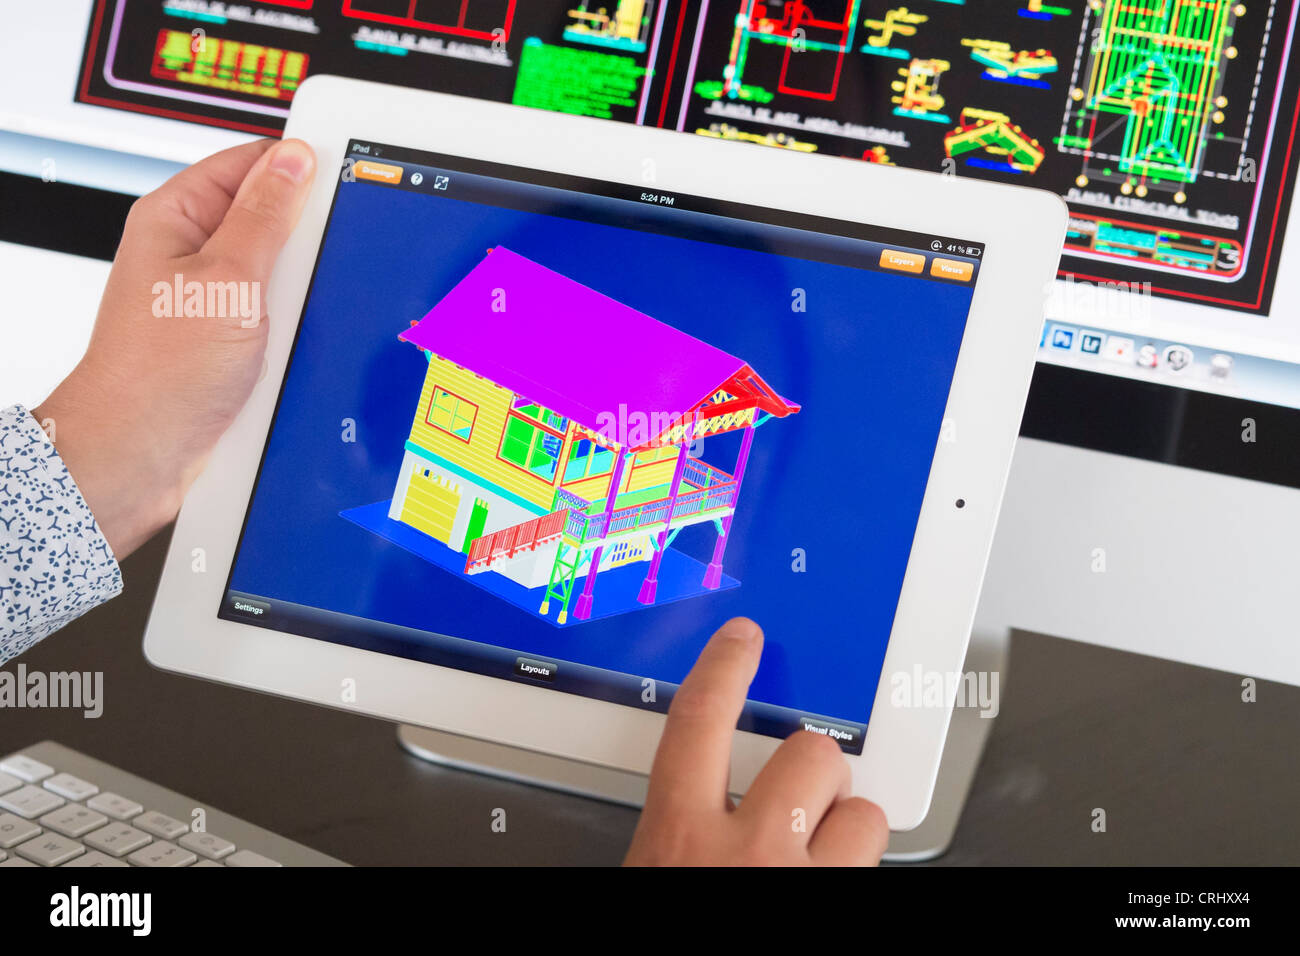 Architect Using Ipad Cad Computer Aided Design Application To Model Stock Photo 48952124 Alamy